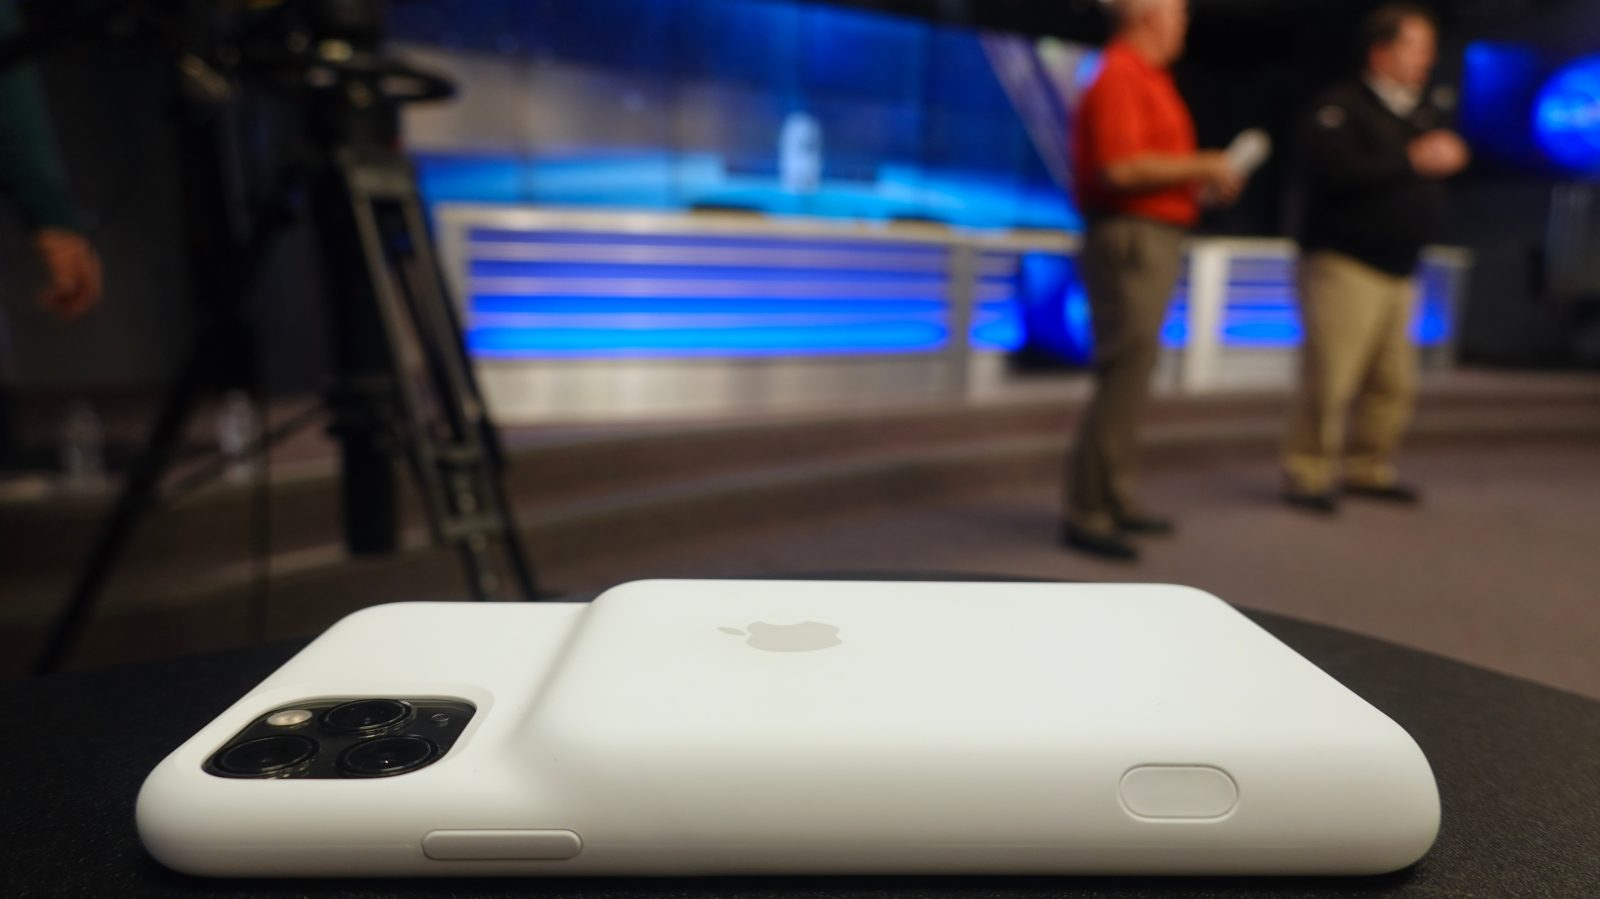 Iphone 11 Pro Max Smart Battery Case Enhances The Camera But The Battery May Not Be Necessary 9to5mac